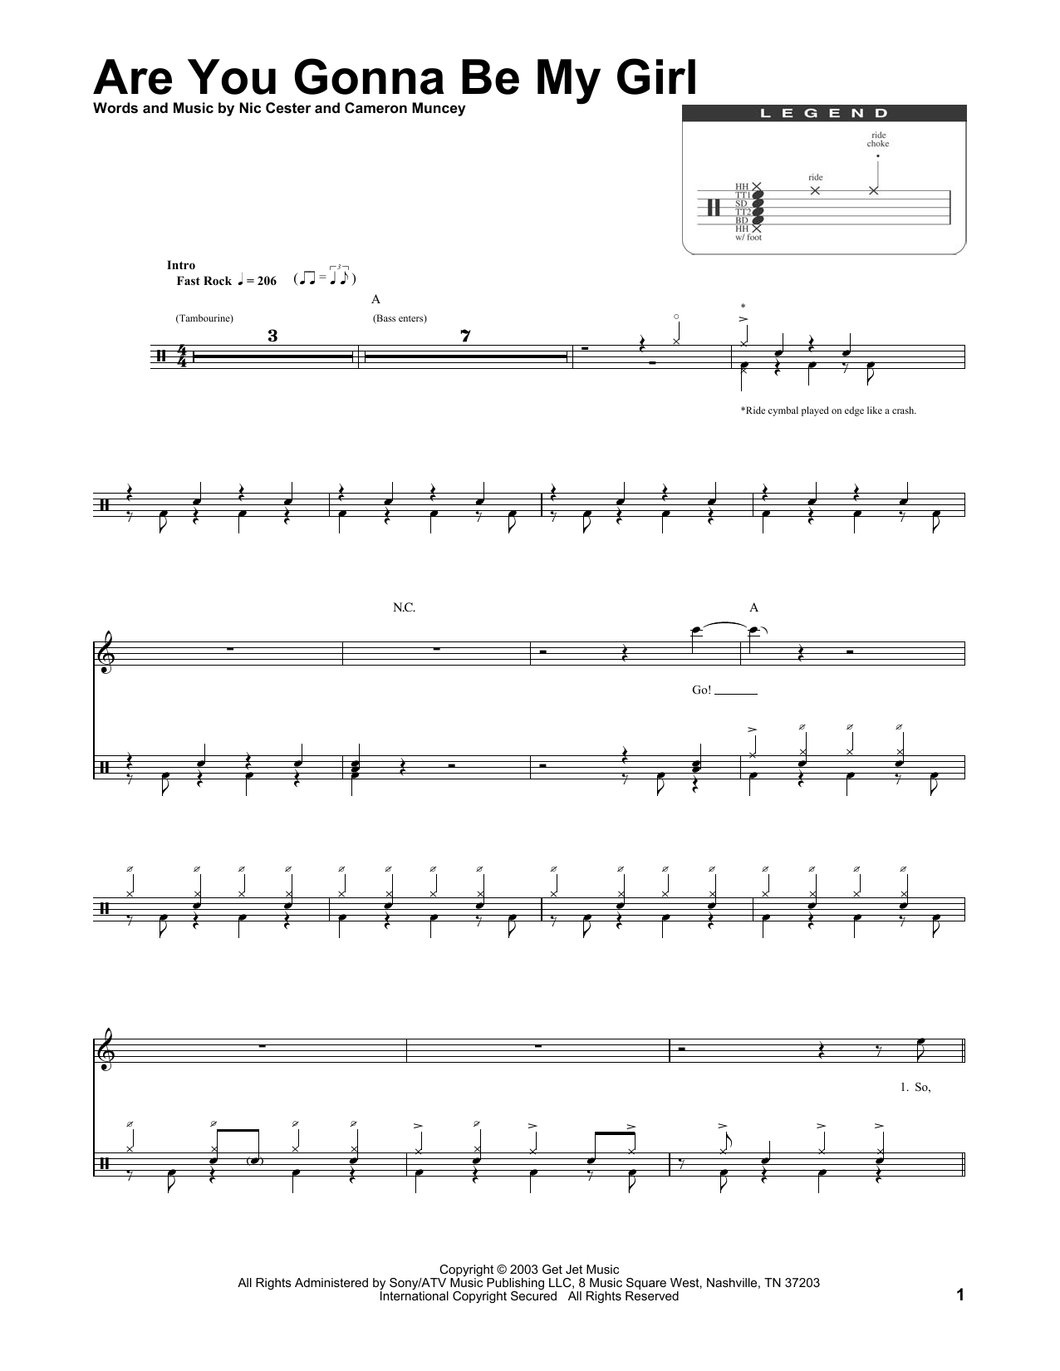 Are You Gonna Be My Girl - Jet - Full Drum Transcription / Drum Sheet Music - SheetMusicDirect DT174280